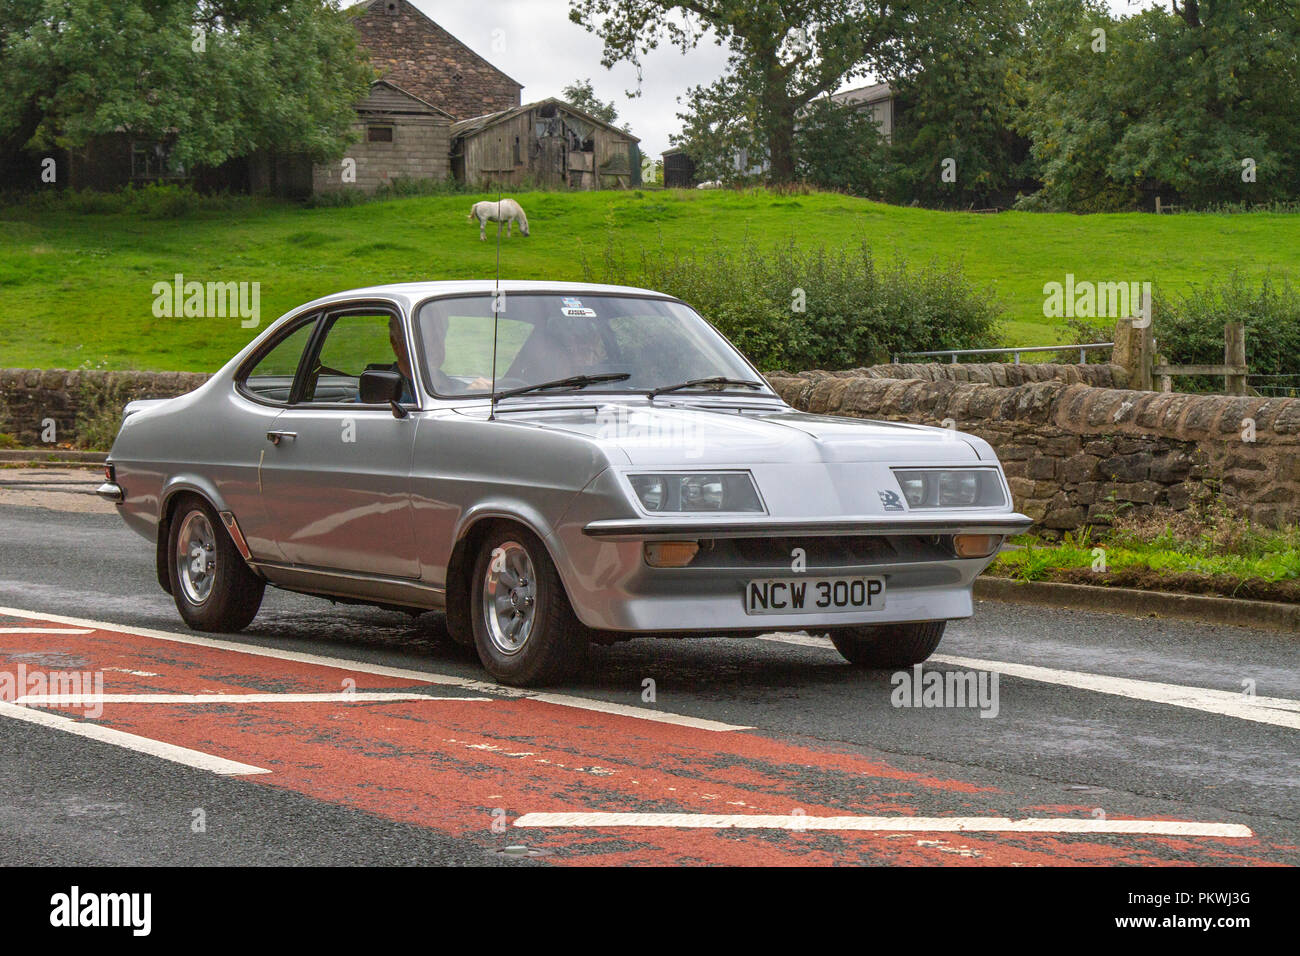 Silver 1975 Vauxhall Firenza 2279 DN Classic, vintage, veteran, cars of yesteryear, restored collectibles at Hoghton Tower Class Cars Rally, UK - Stock Image